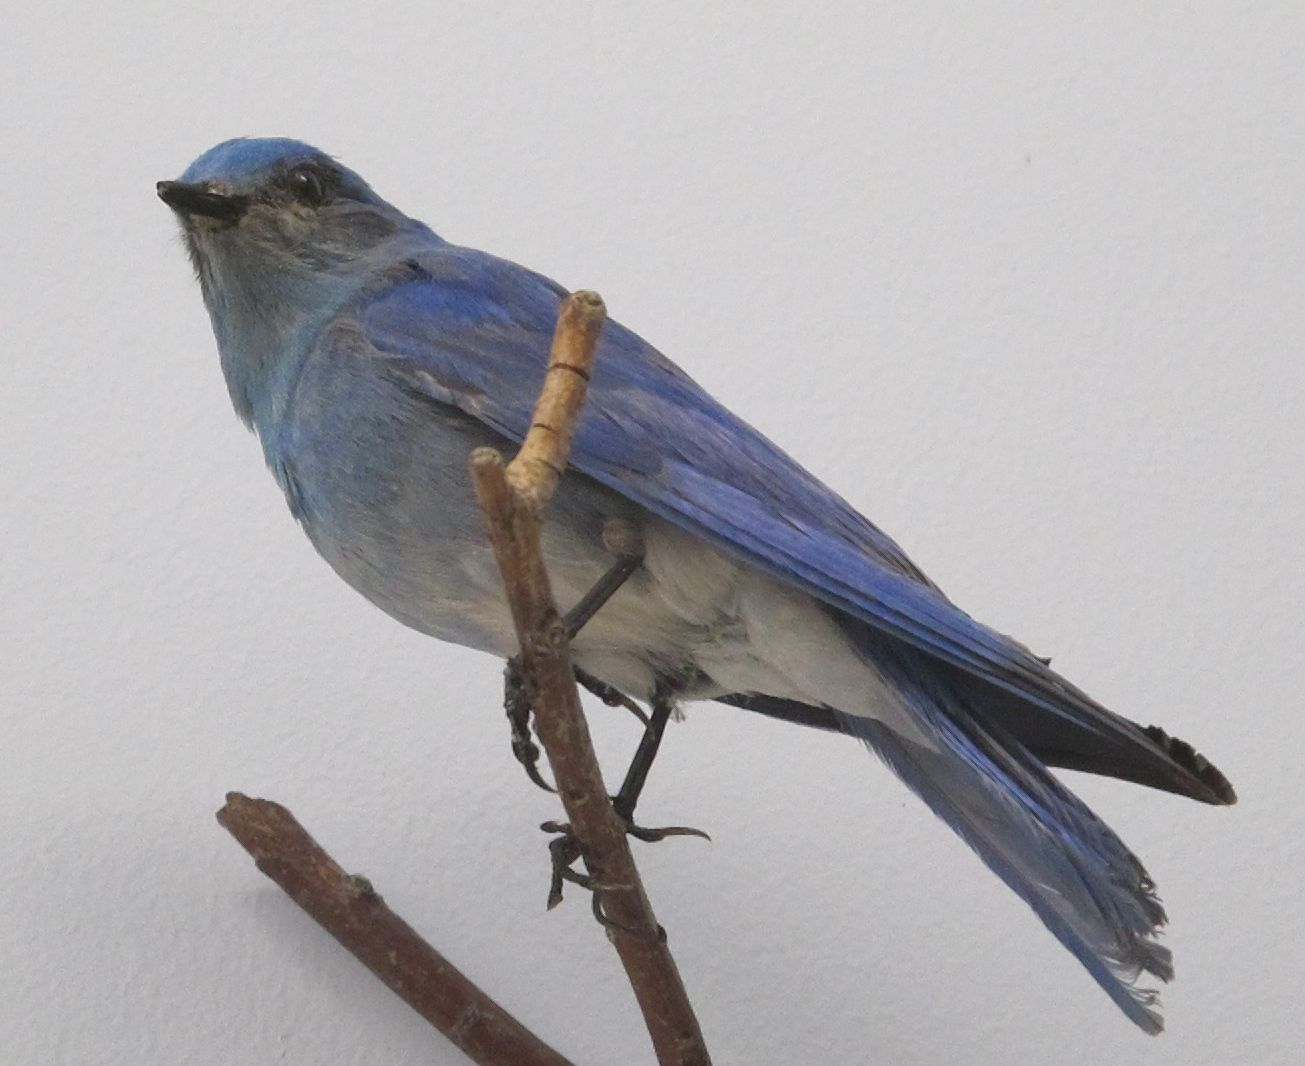 A mountain bluebird.